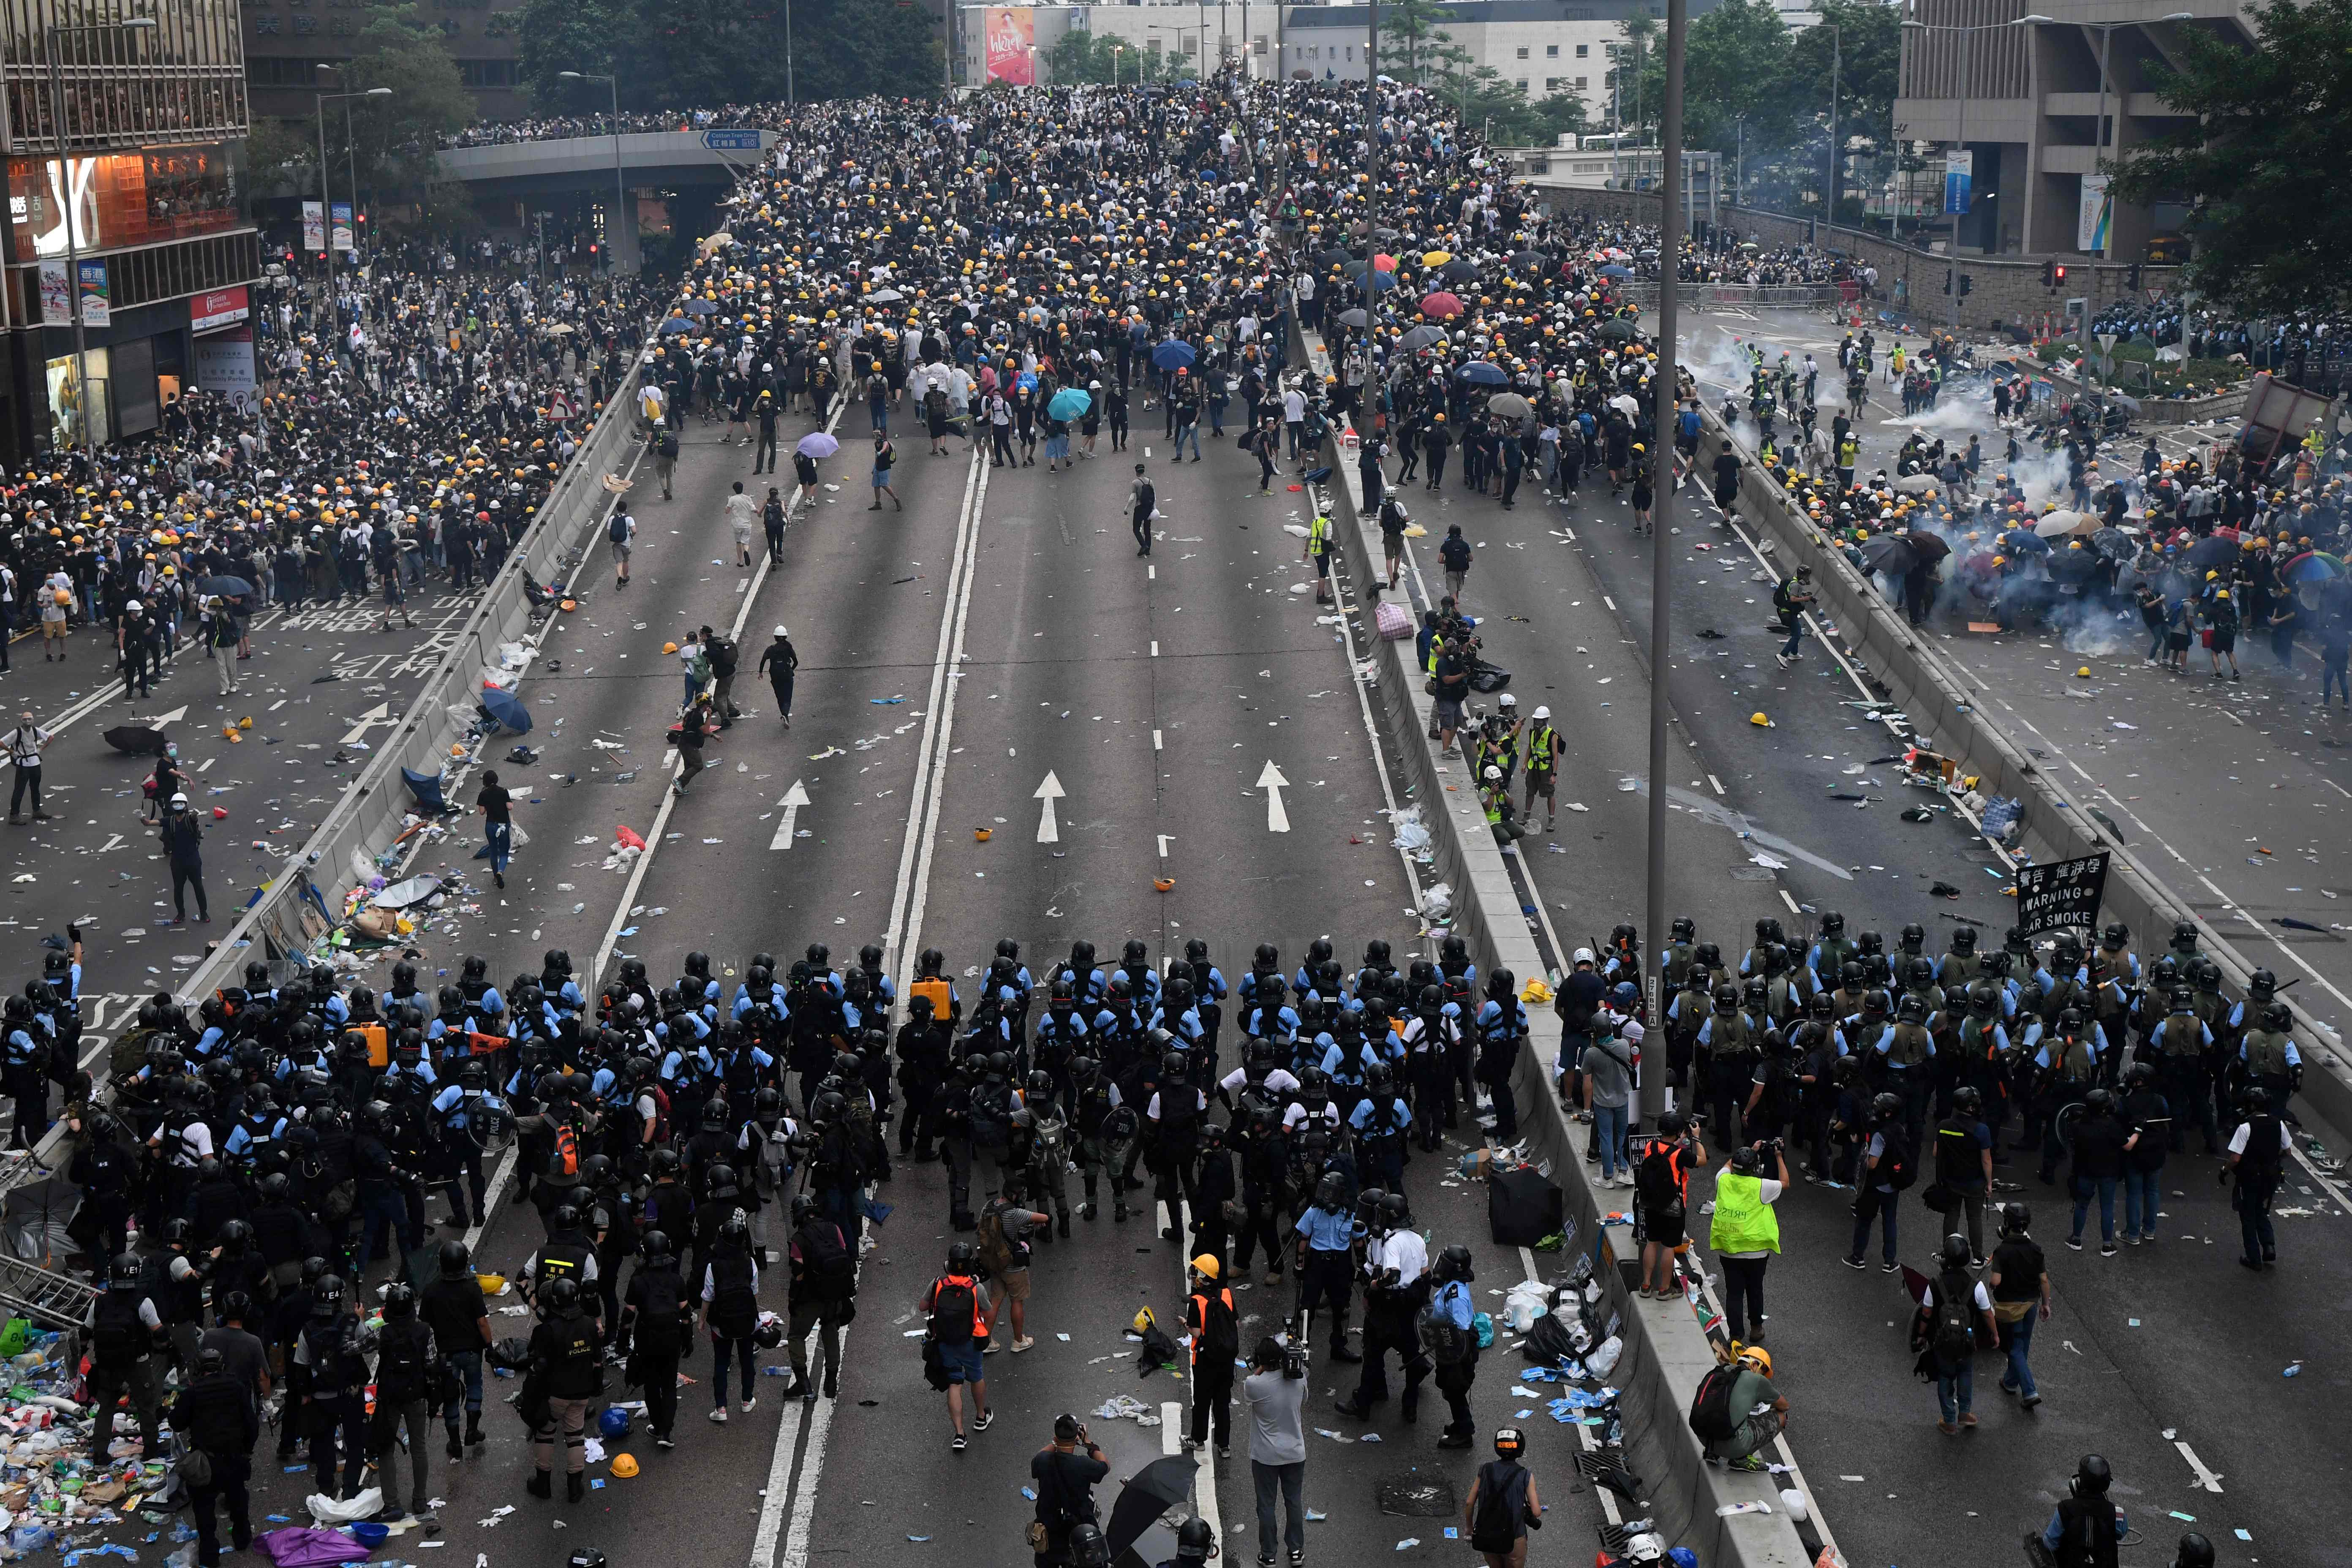 Protesters face off with police outside the Hong Kong parliament building